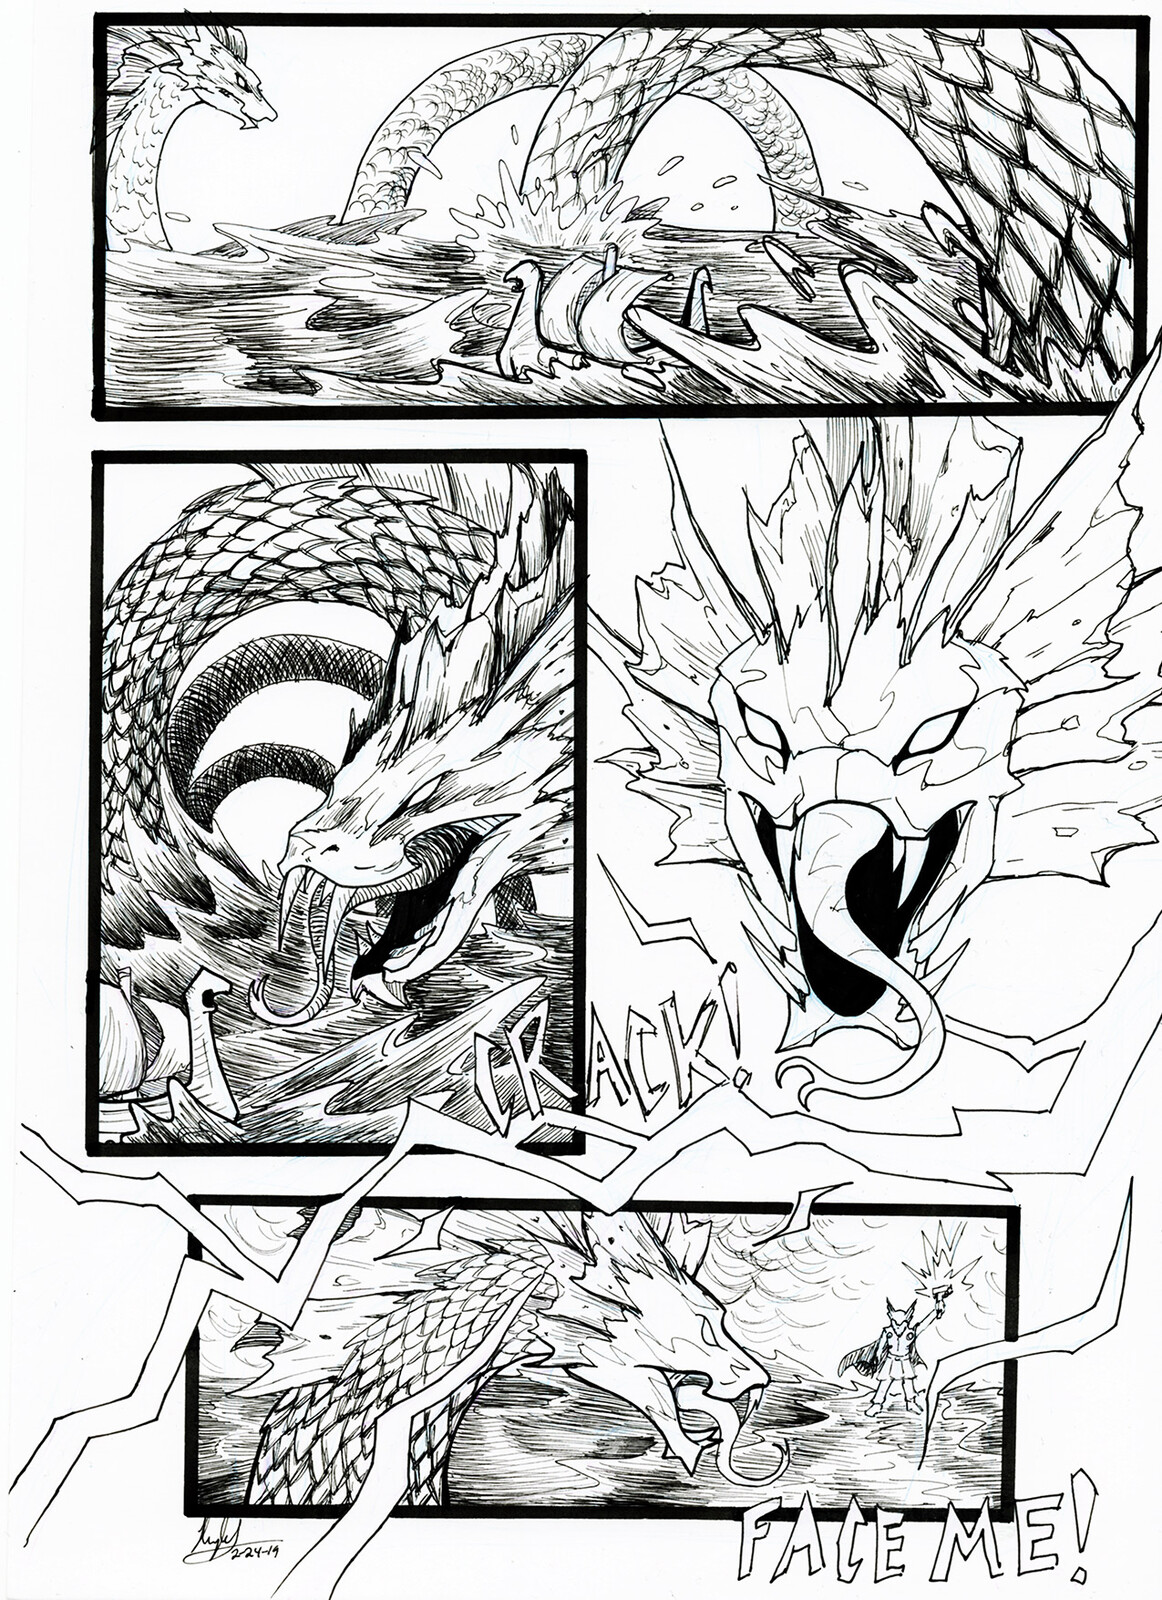 """A comic put together from random sketches of the world serpent in my sketchbook. When my friend asked if it was the layout for a comic, I said """"it is now!"""""""